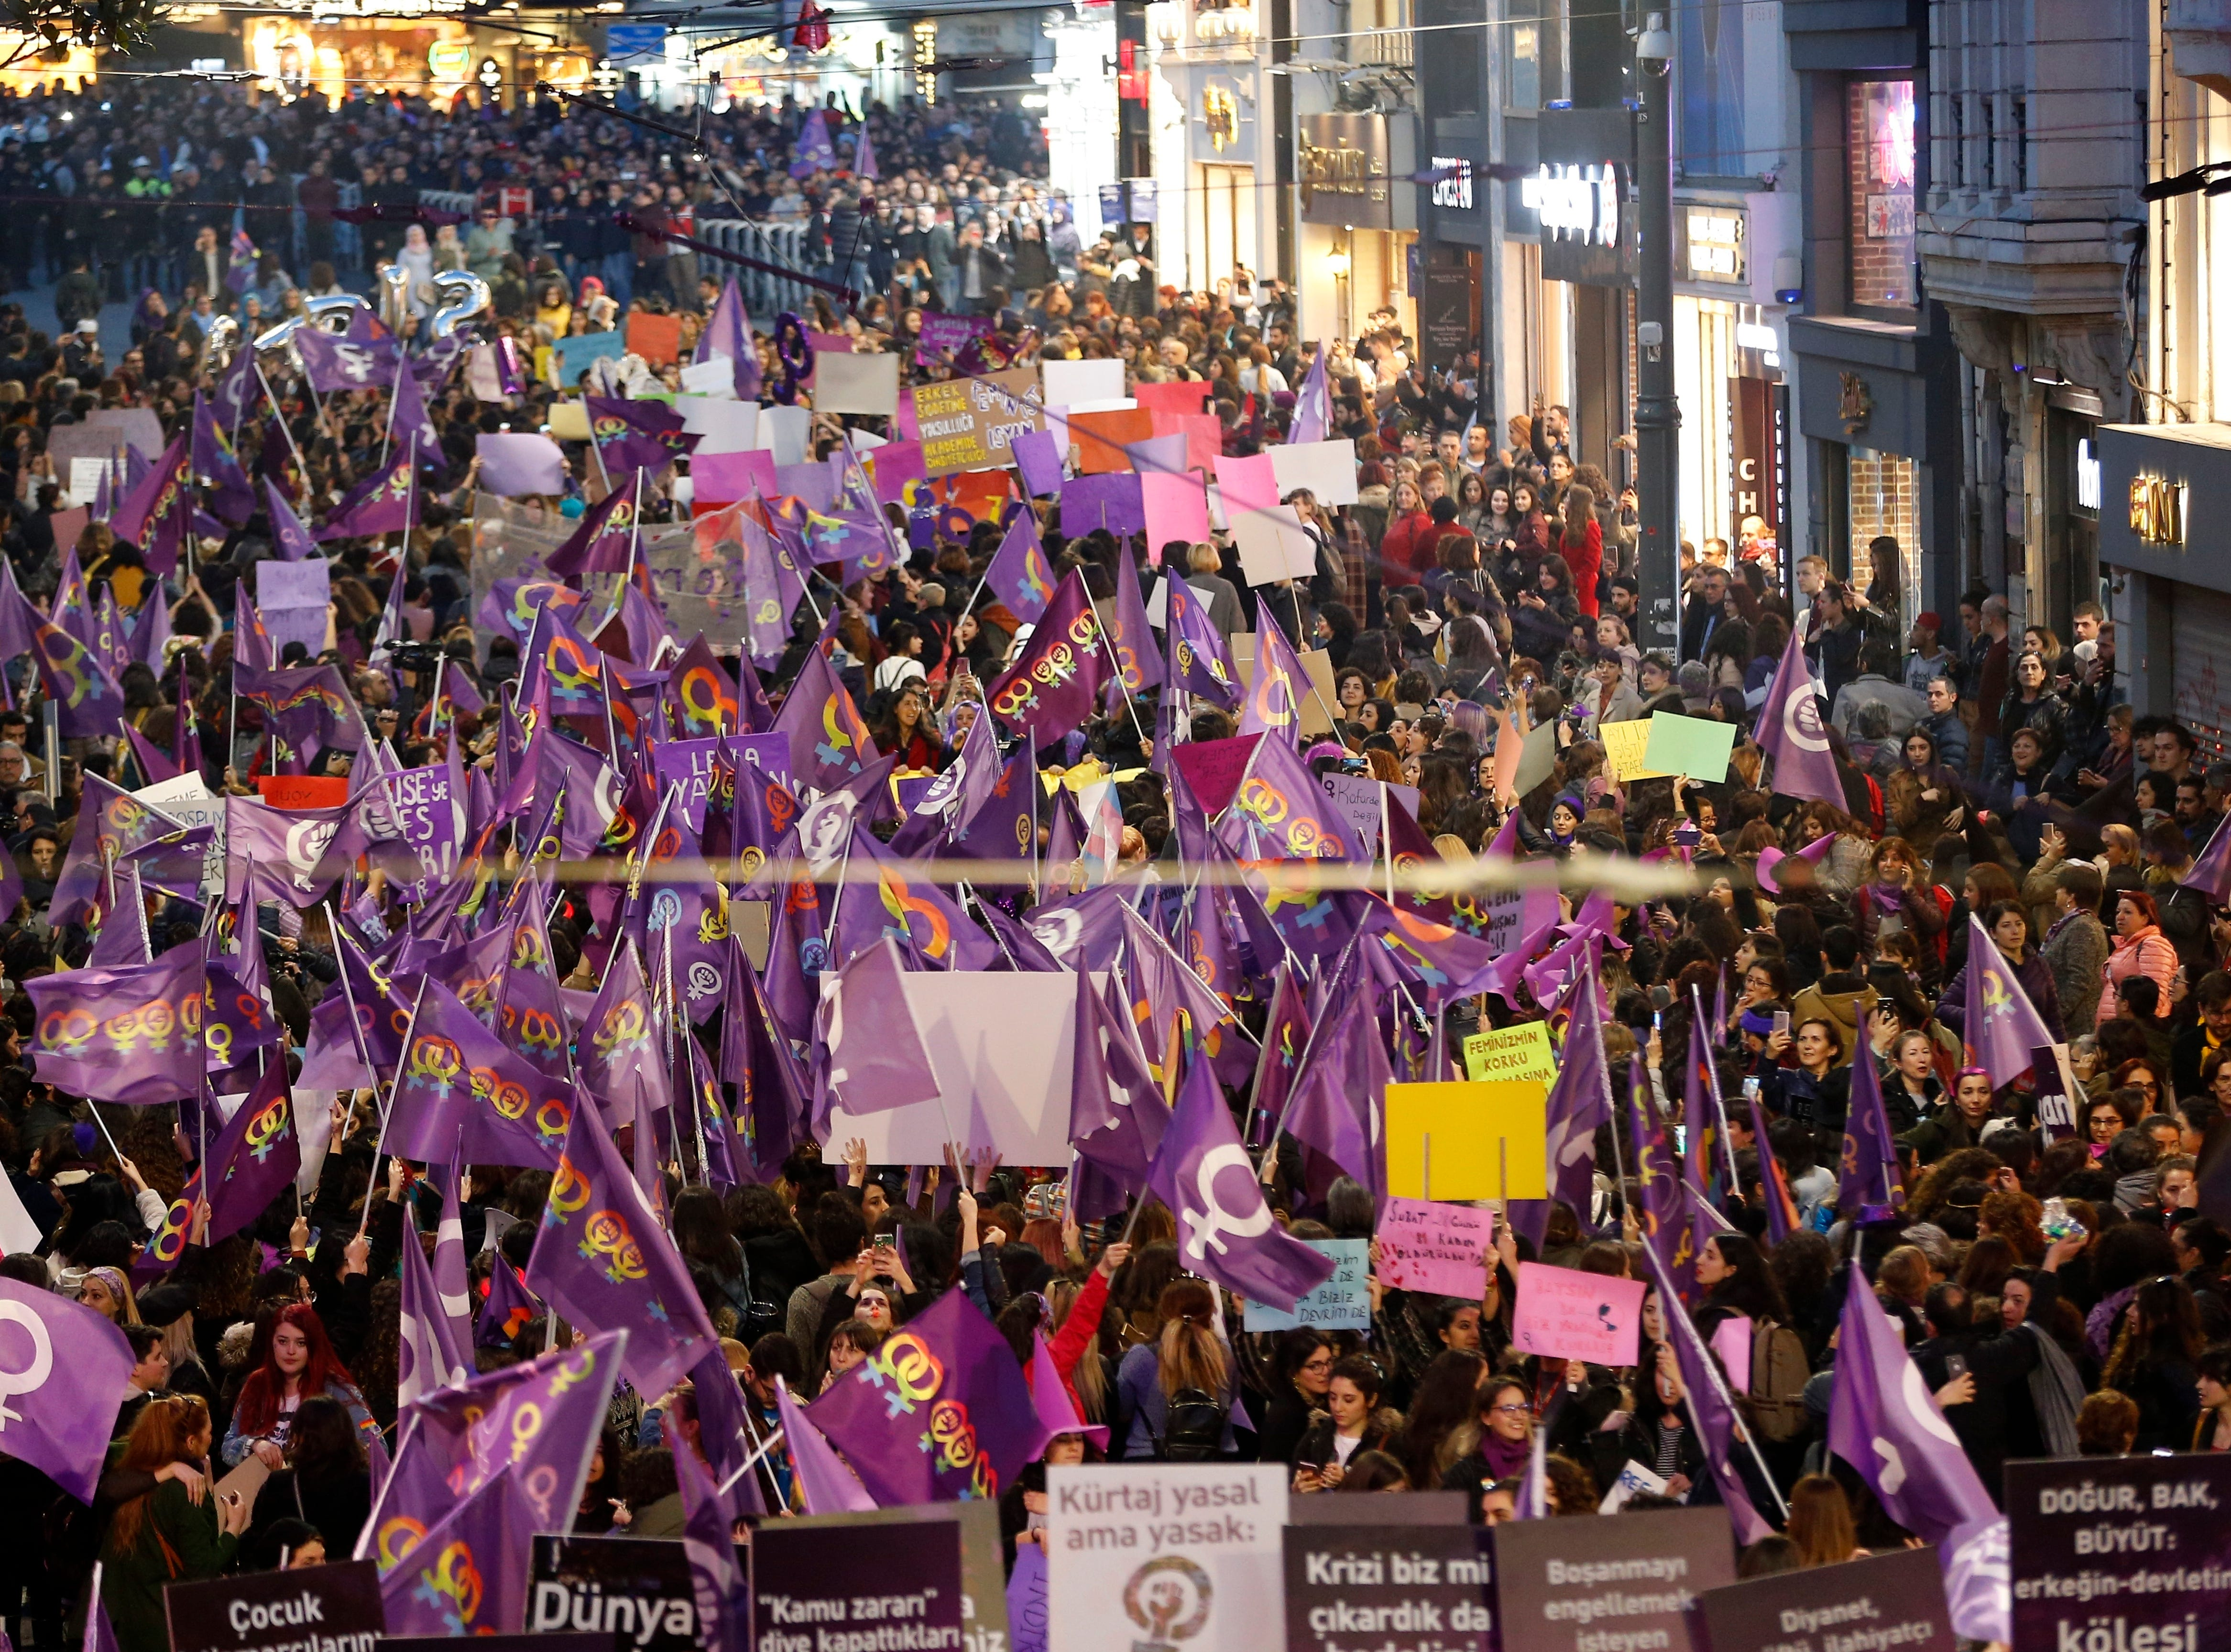 Protesters gather as Turkish police block Istiklal street, the main shopping street in Istanbul, during the International Women's Day, Friday, March 8, 2019. The day has been sponsored by the United Nations since 1975 as millions around the world are demanding equality amid a persistent salary gap, violence and widespread inequality. (AP Photo/Lefteris Pitarakis)